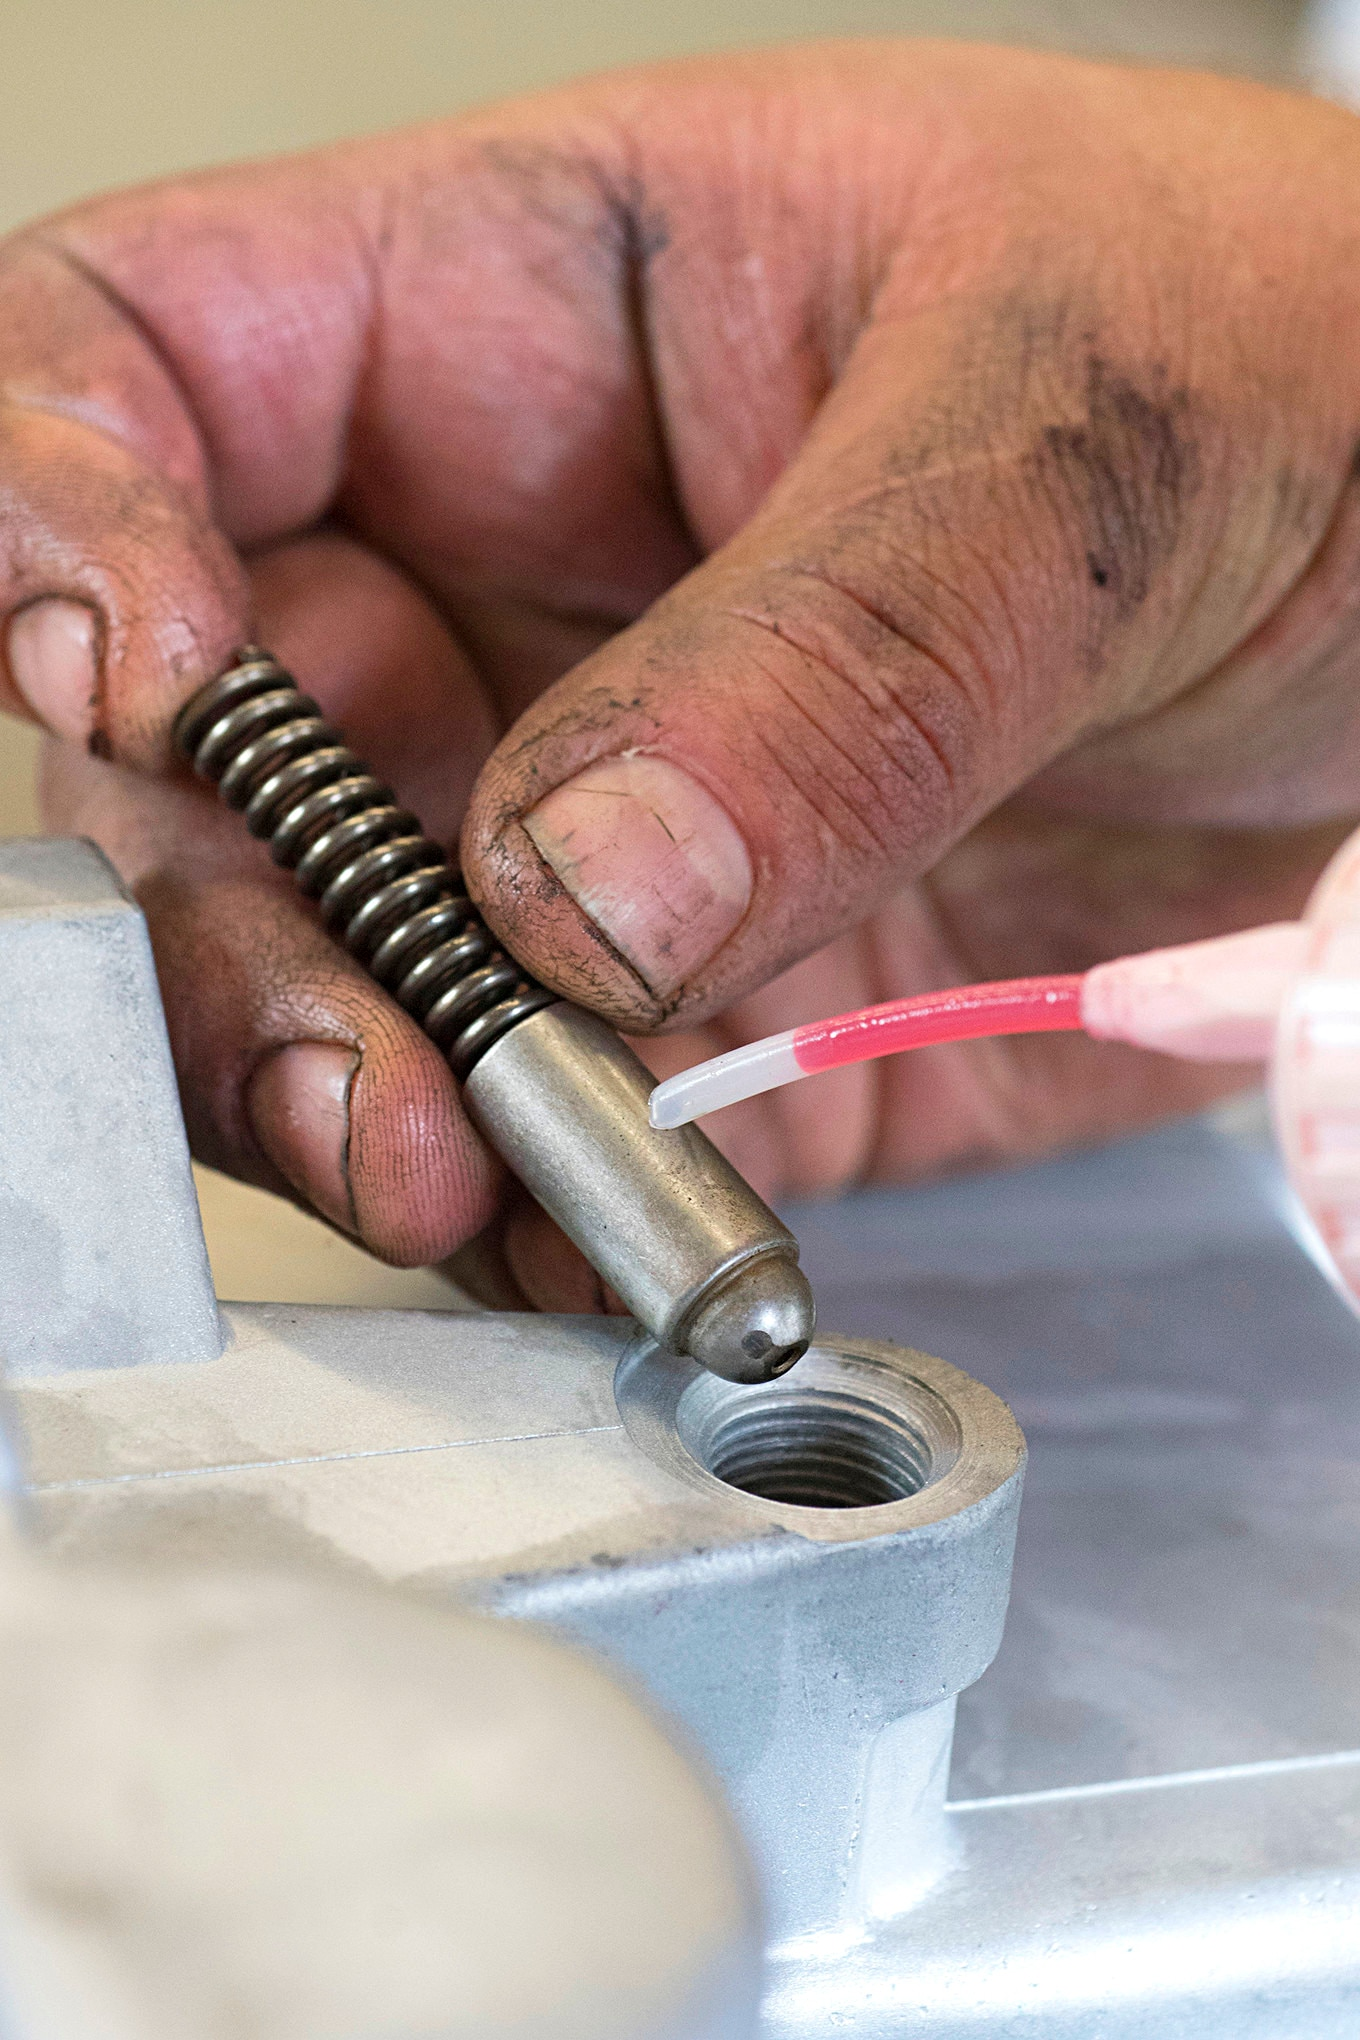 Reinstall the shift detent spring with the supplied O-ring and plug. It should be lubricated with ATF as well.